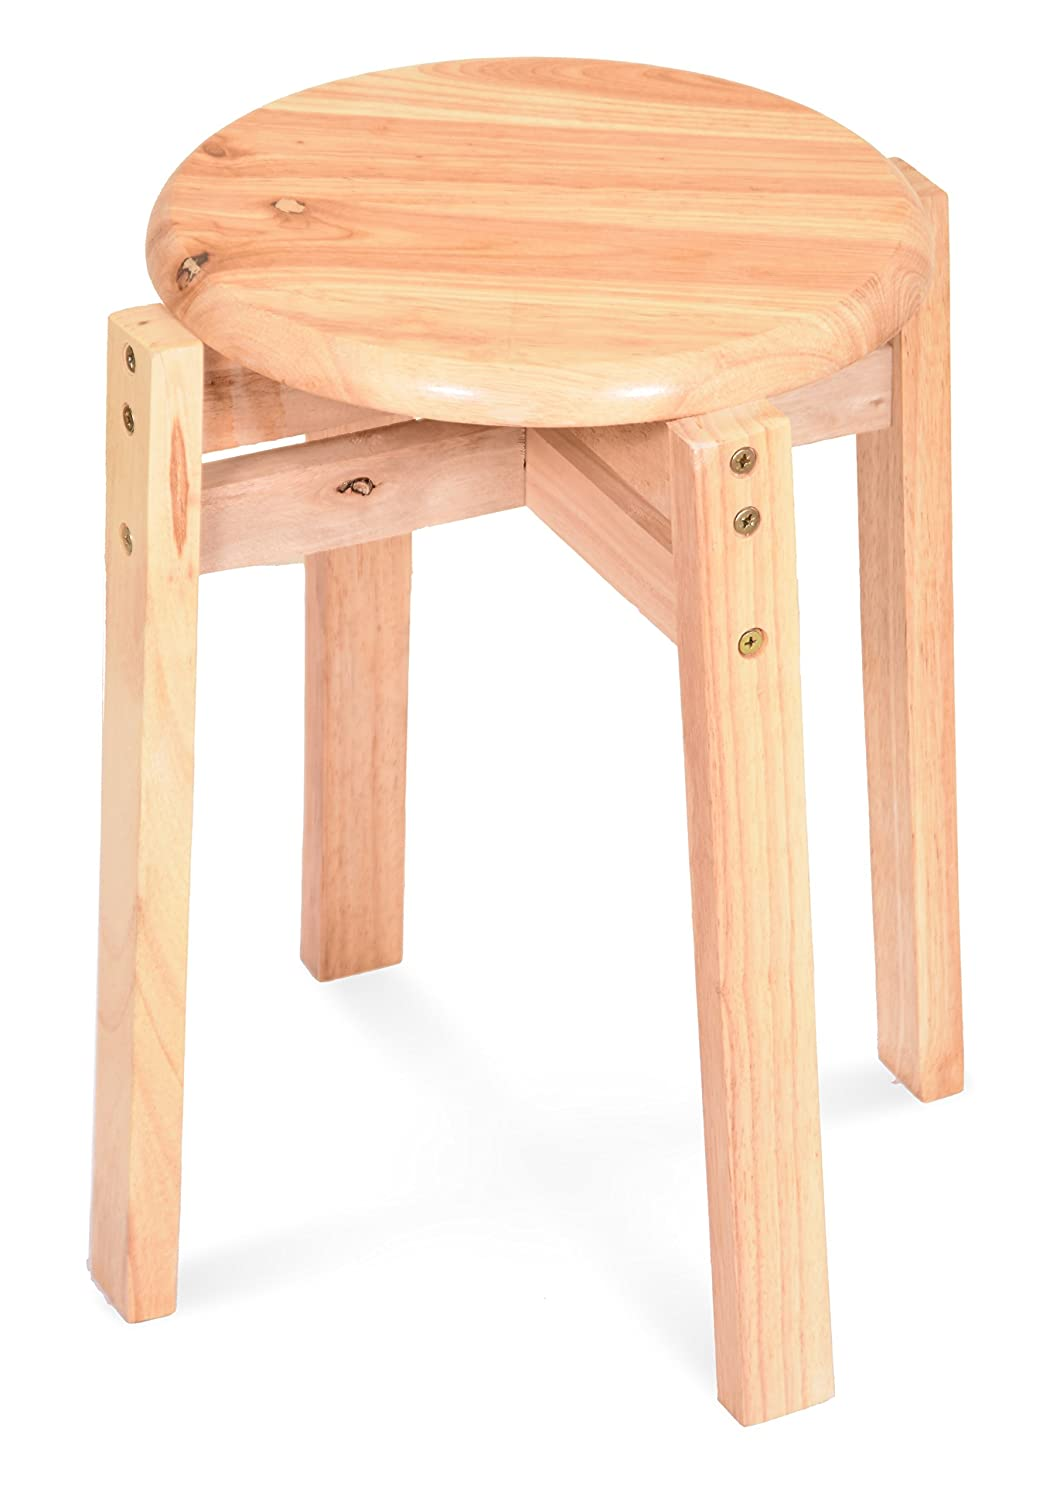 Somin Wood Square Leg Bar stool with Natural Finish for Adults and Childrens